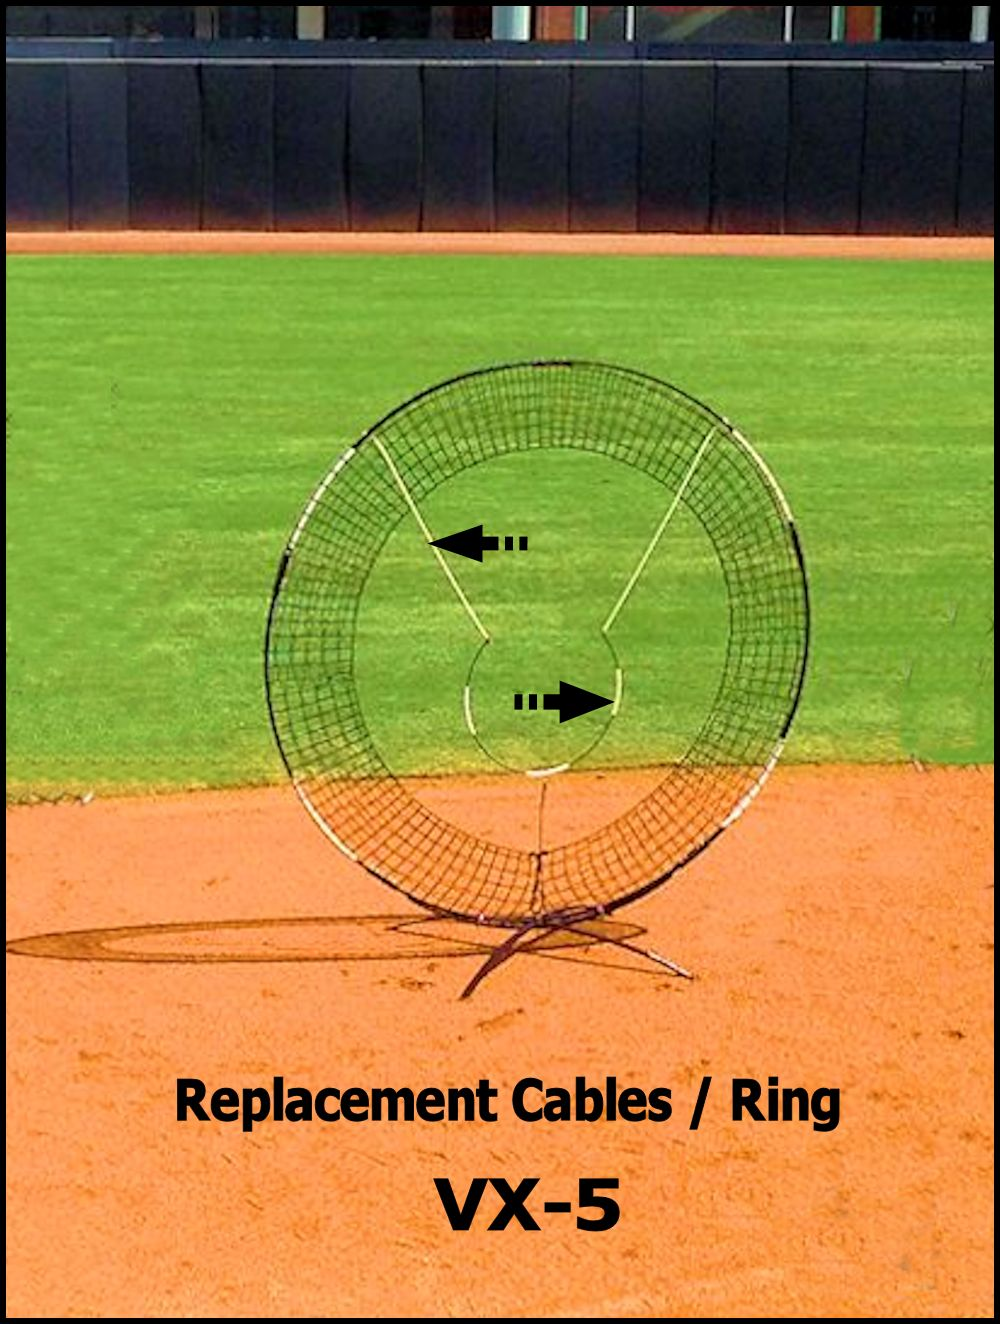 replacement-cables-and-ring-vx5.jpg